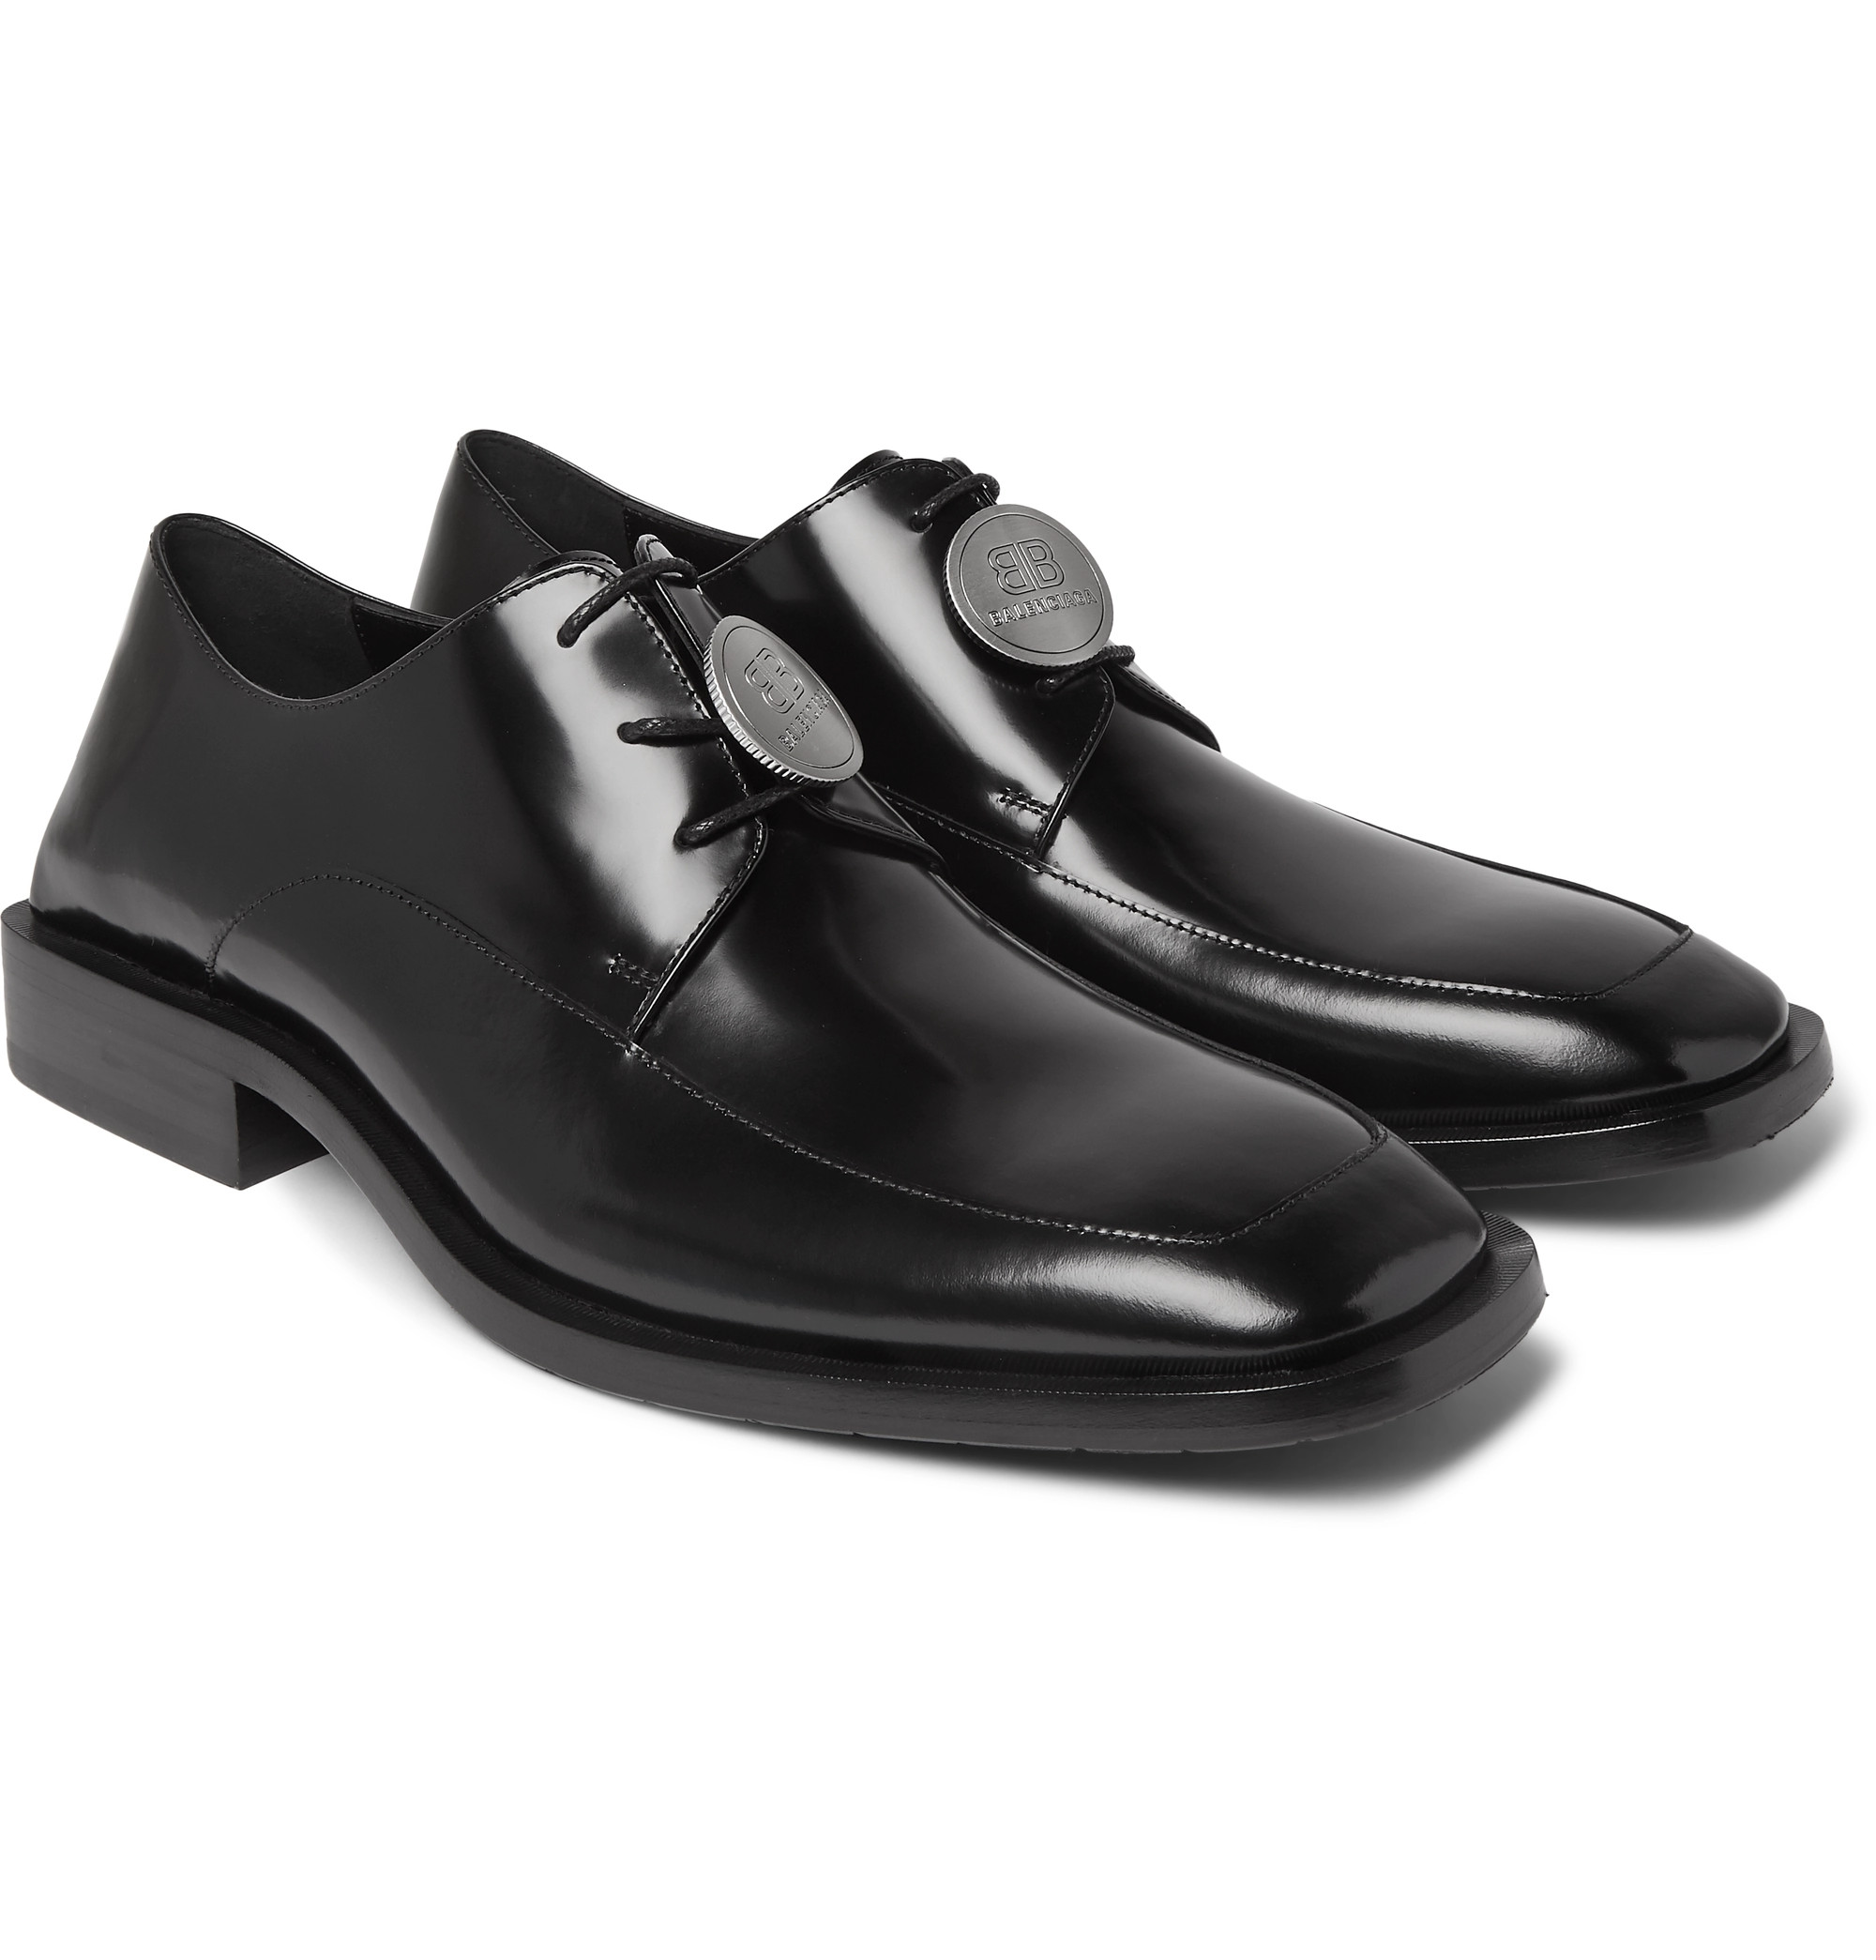 Detailed Patent-Leather Derby Shoes